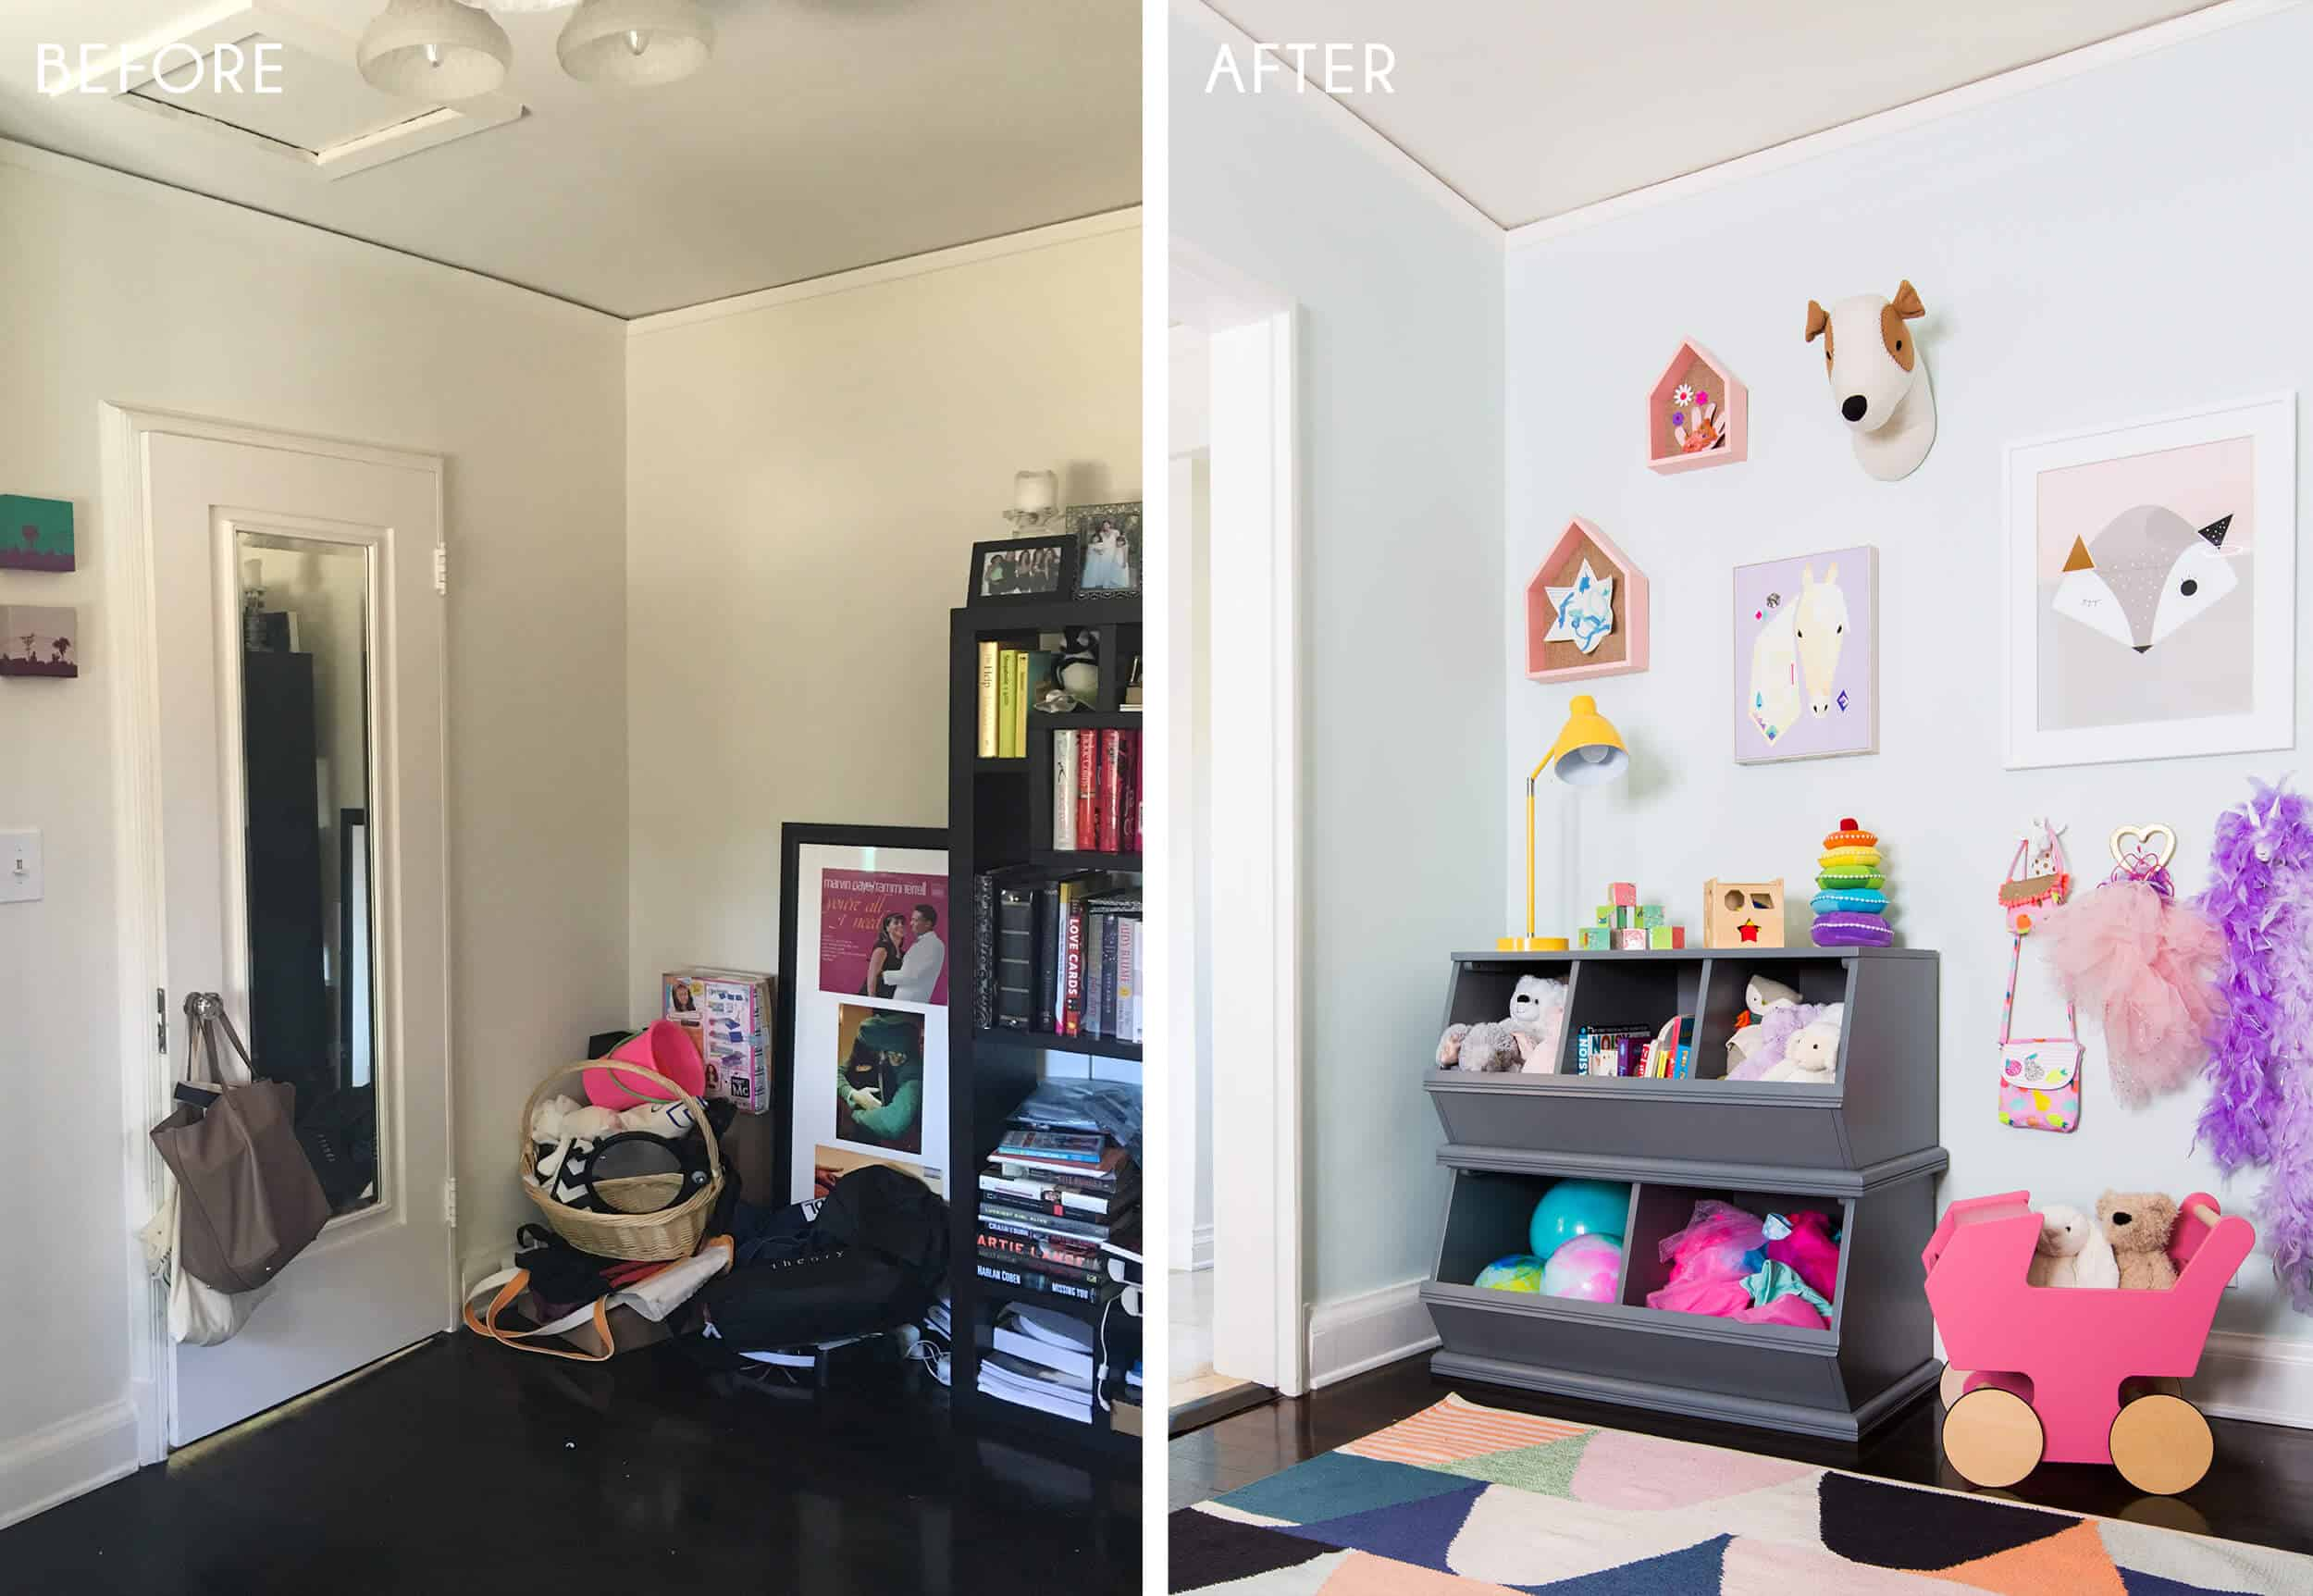 Playroom_Girls_Bright_Happy_Modern_Emily Henderson_Before_Side by Side_After_3